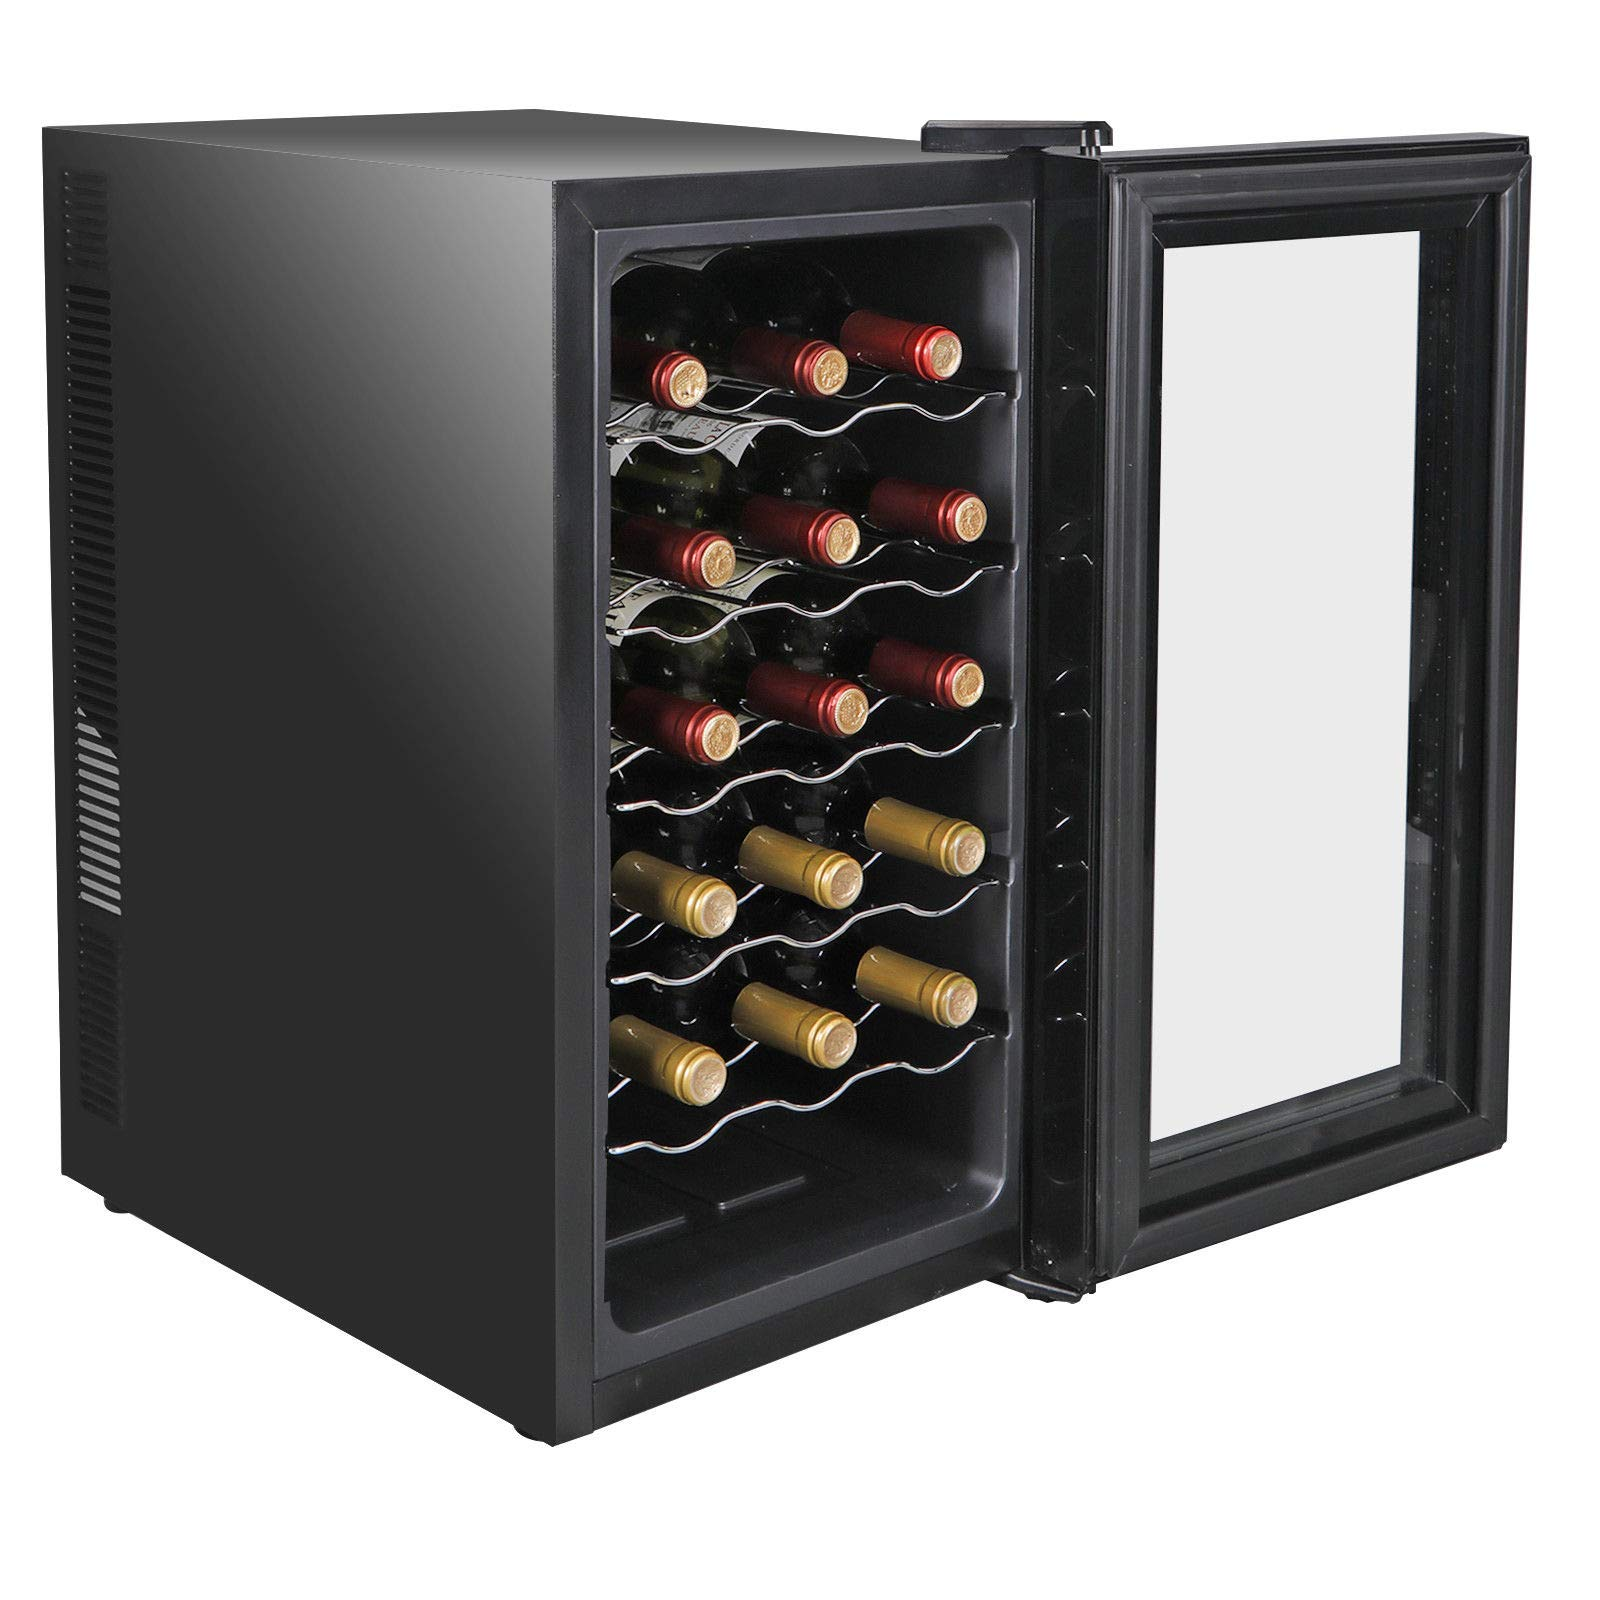 Add Elegance Of Your Room Reinforced Glass Door With Air-Tight Seal Chilling And Storing 18 Bottles Of Wine, Cooler Refrigerator Quiet Temperature Control